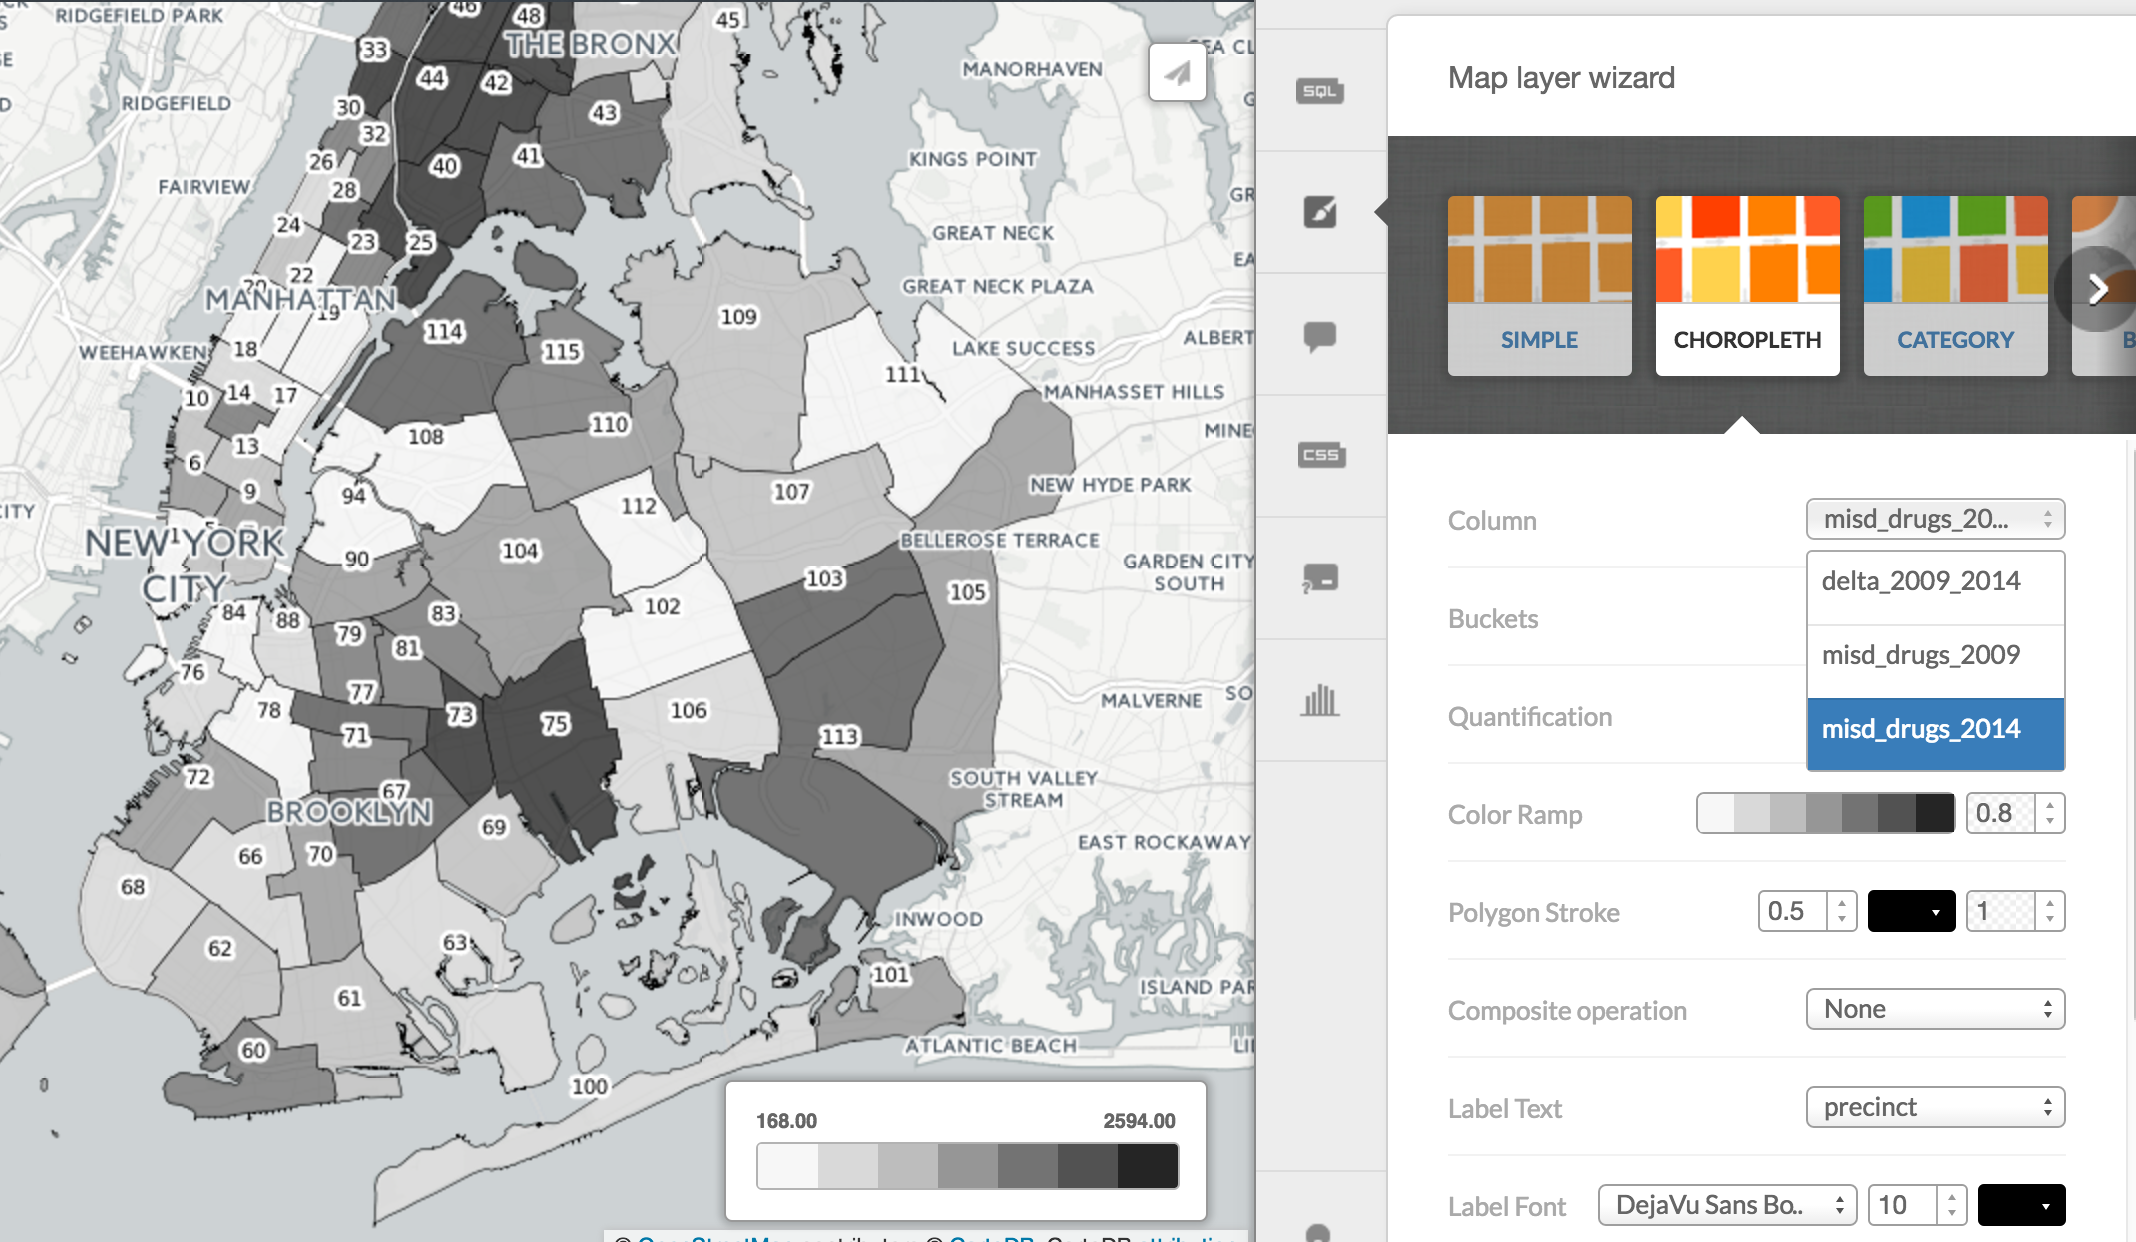 image grayscale-choropleth-2014-misdrugs-nypd.png